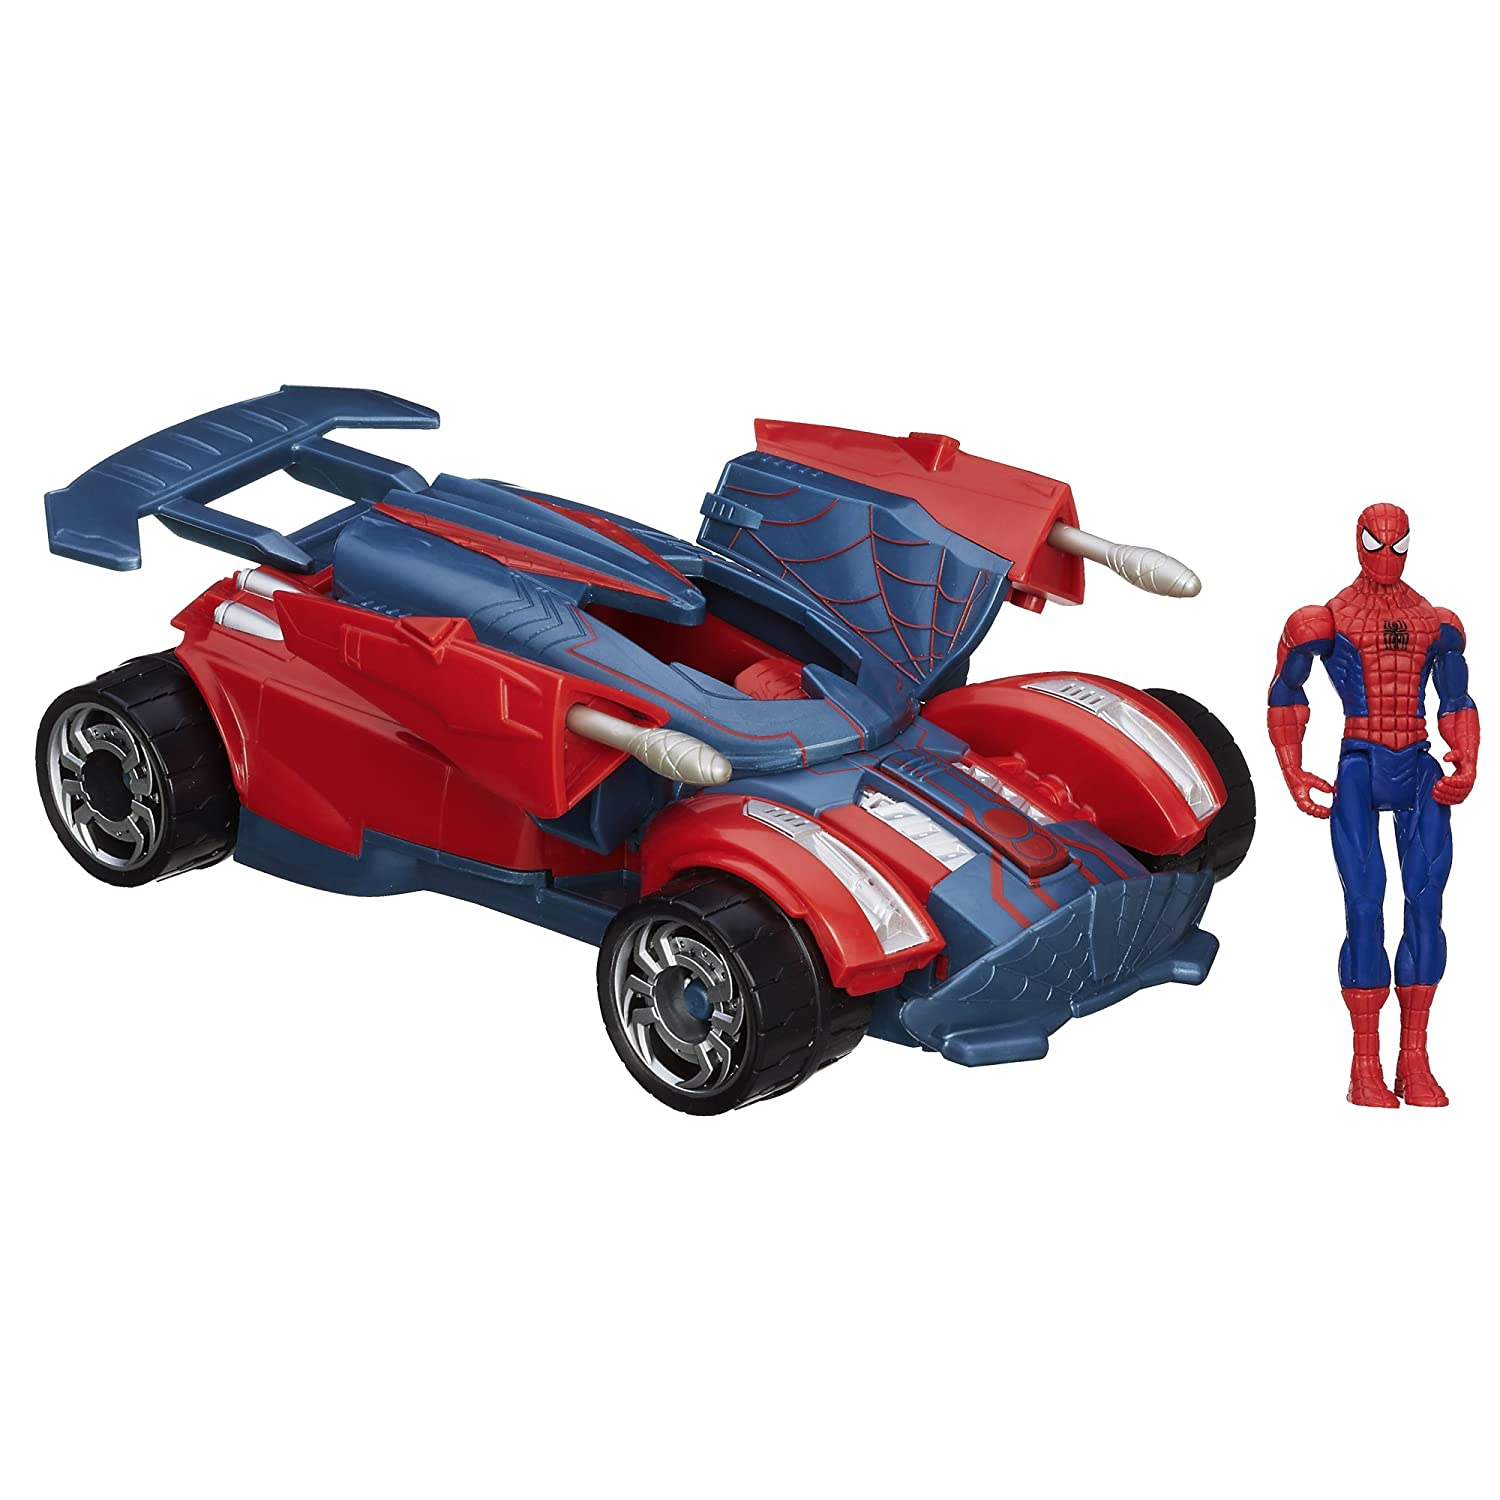 Marvel Ultimate Spider-Man S.H.I.E.L.D. Battle Racer